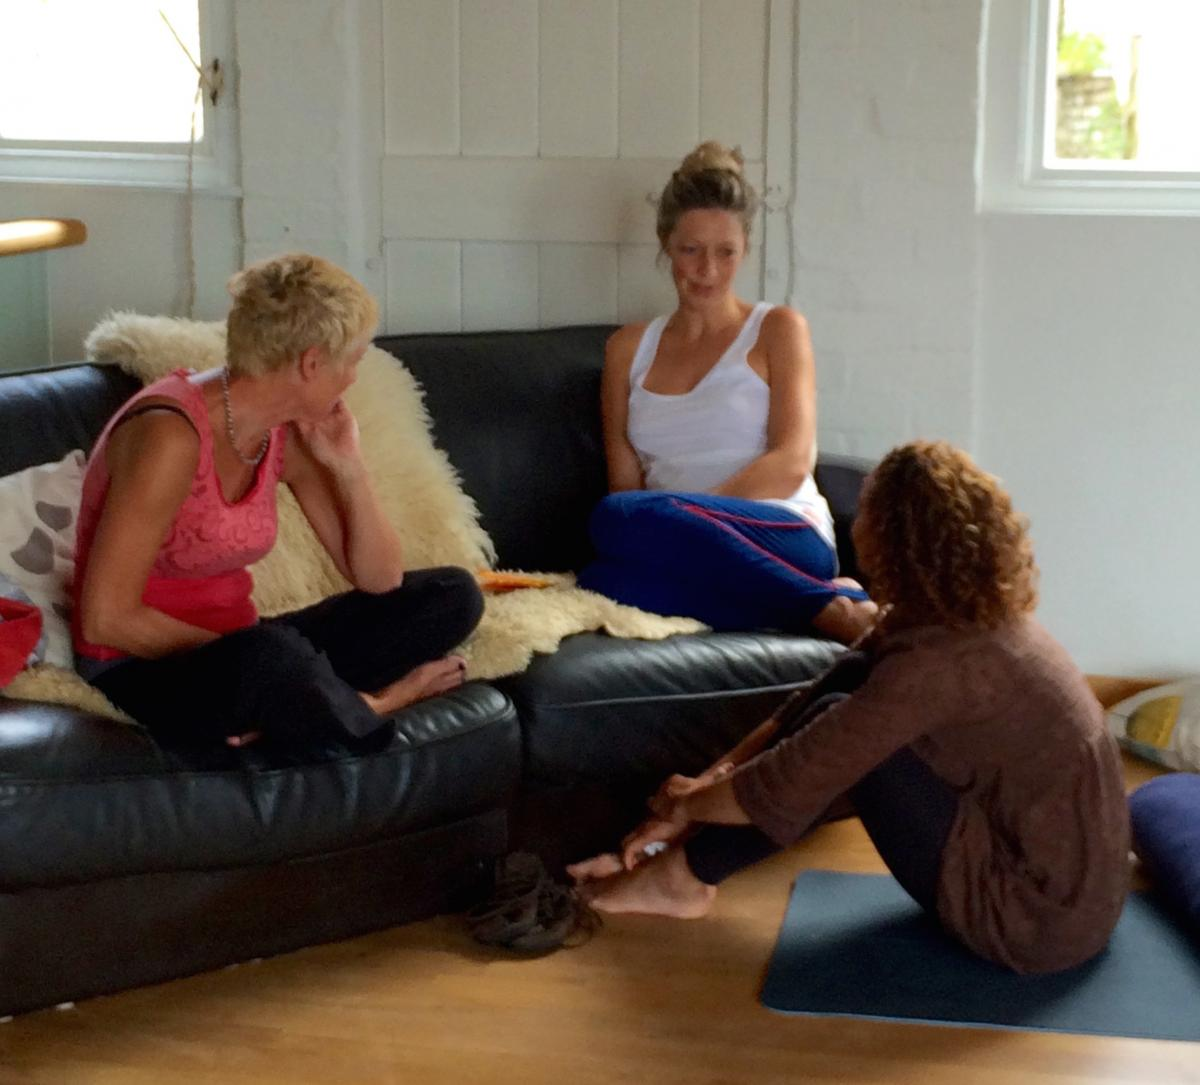 Mamas mini sofa retreat: a mamas' retreat and ecourse with Story of Mum